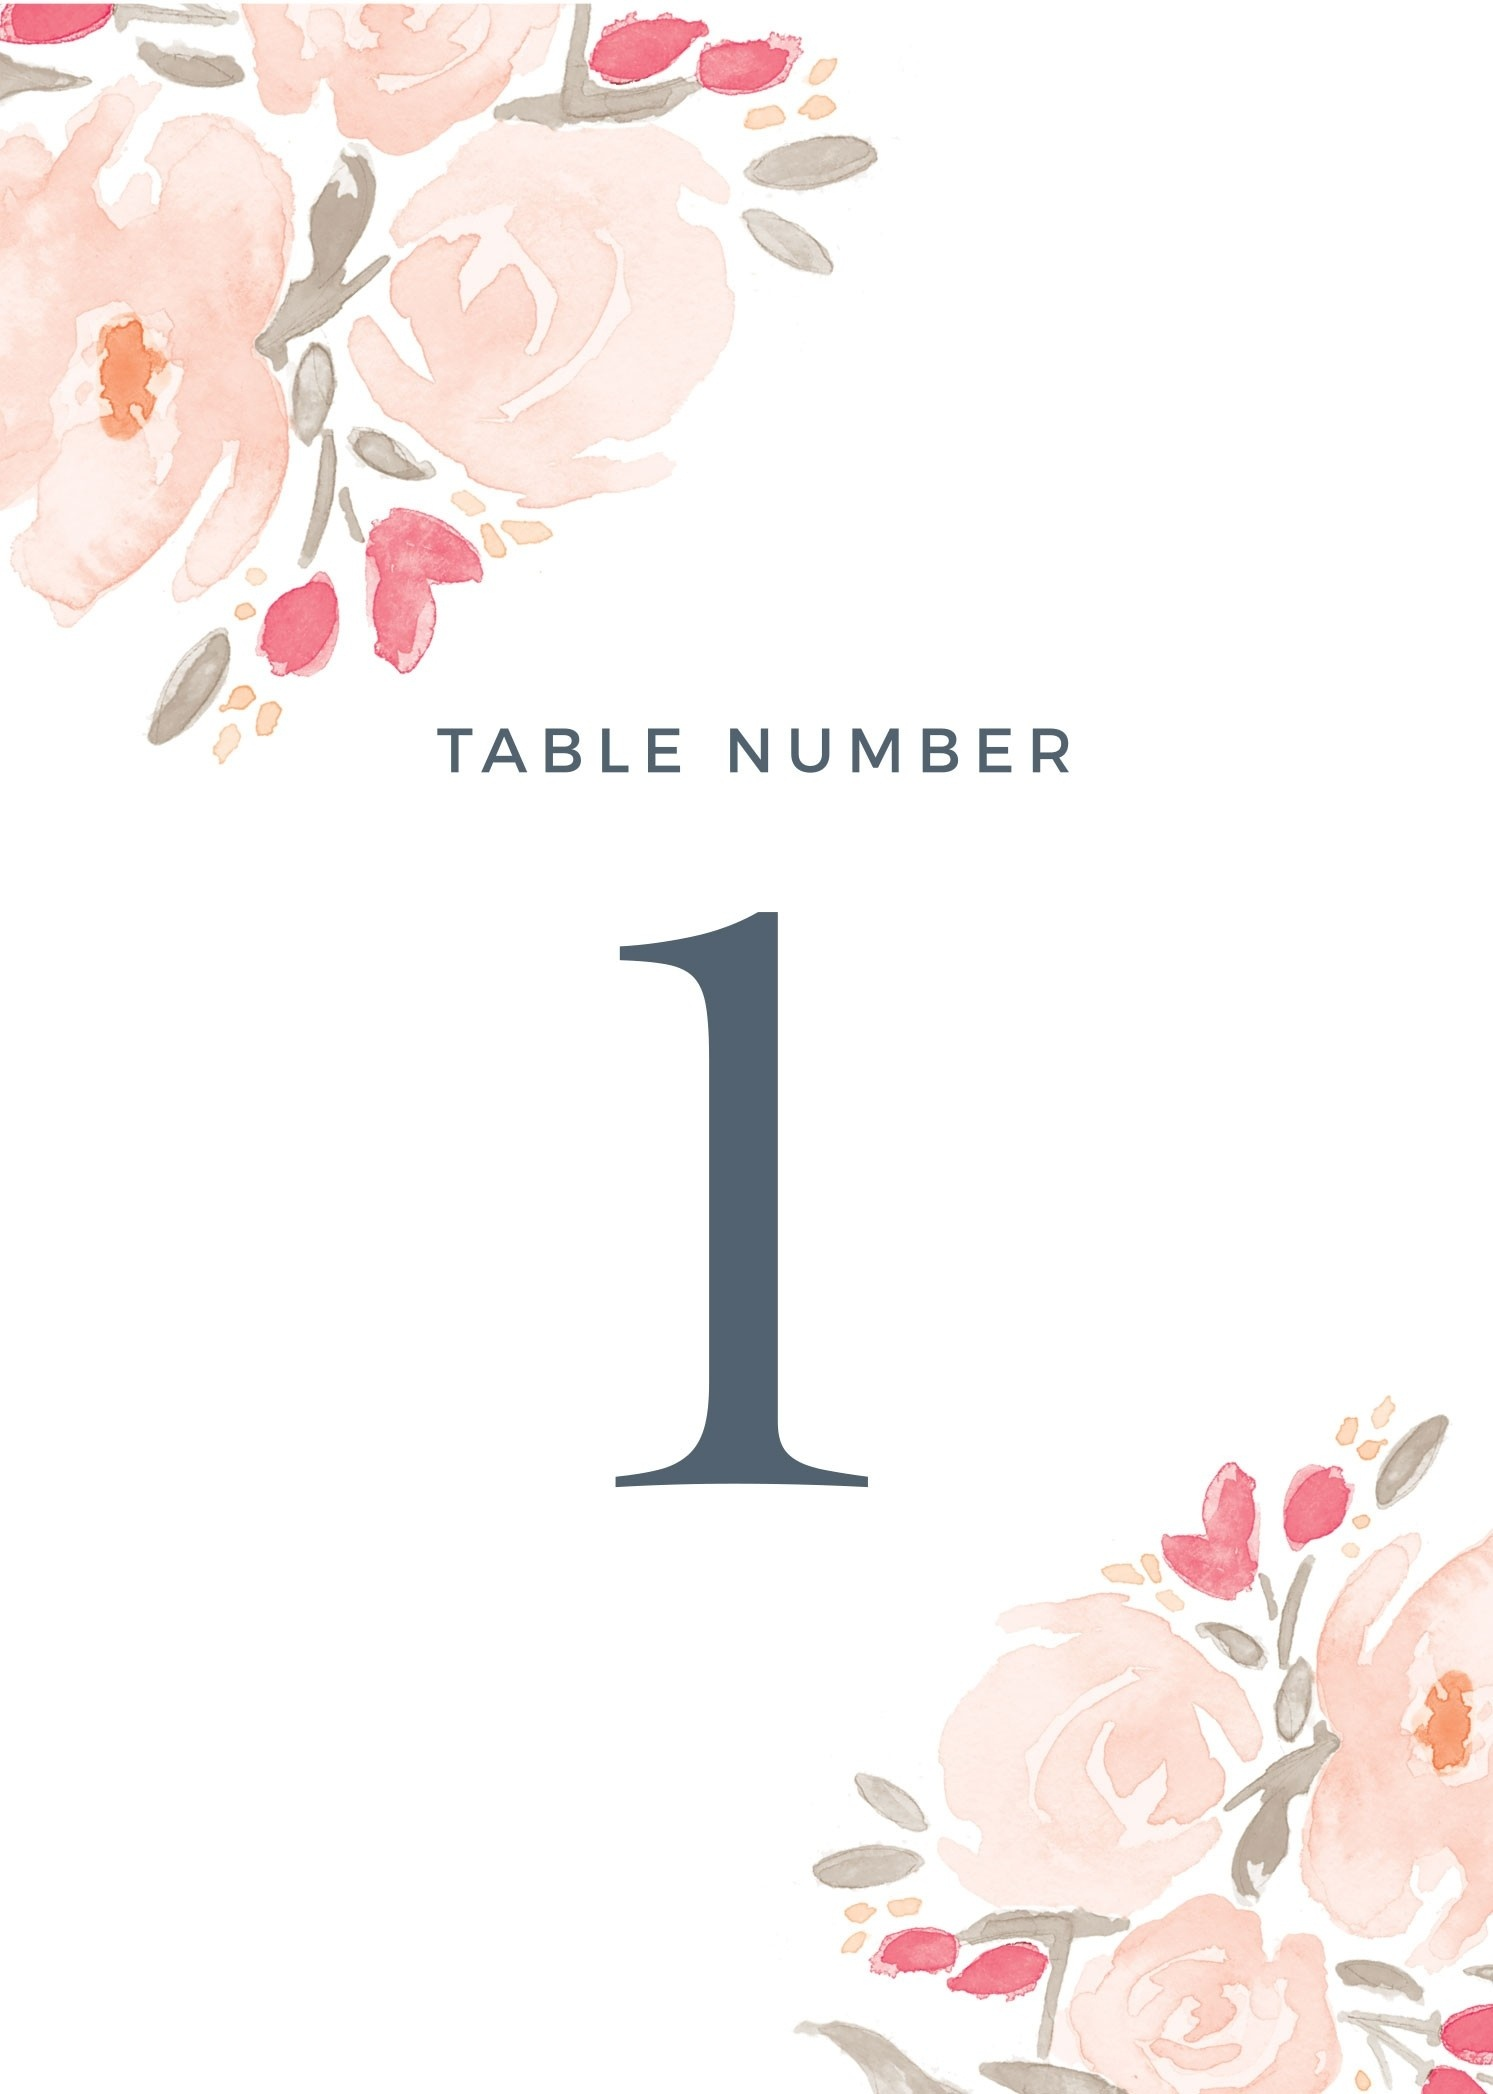 Wedding Table Numbers | Printable Pdfbasic Invite - Free Printable Table Numbers 1 30